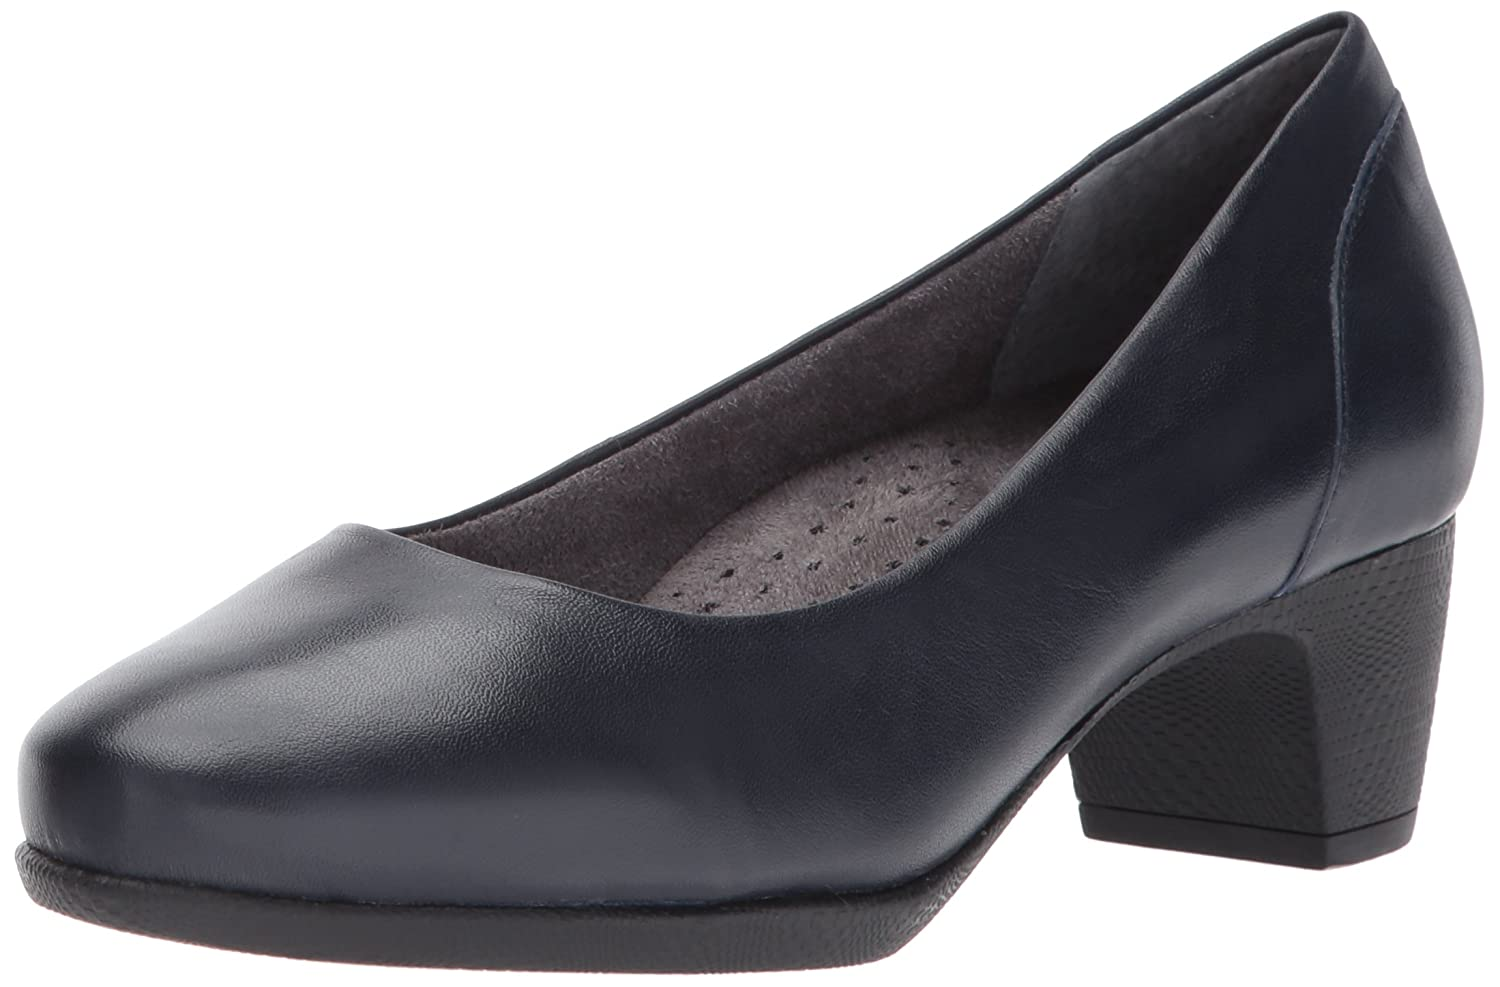 SoftWalk Women's Imperial Ii Dress Pump B072PTQHFJ 10 N US|Navy